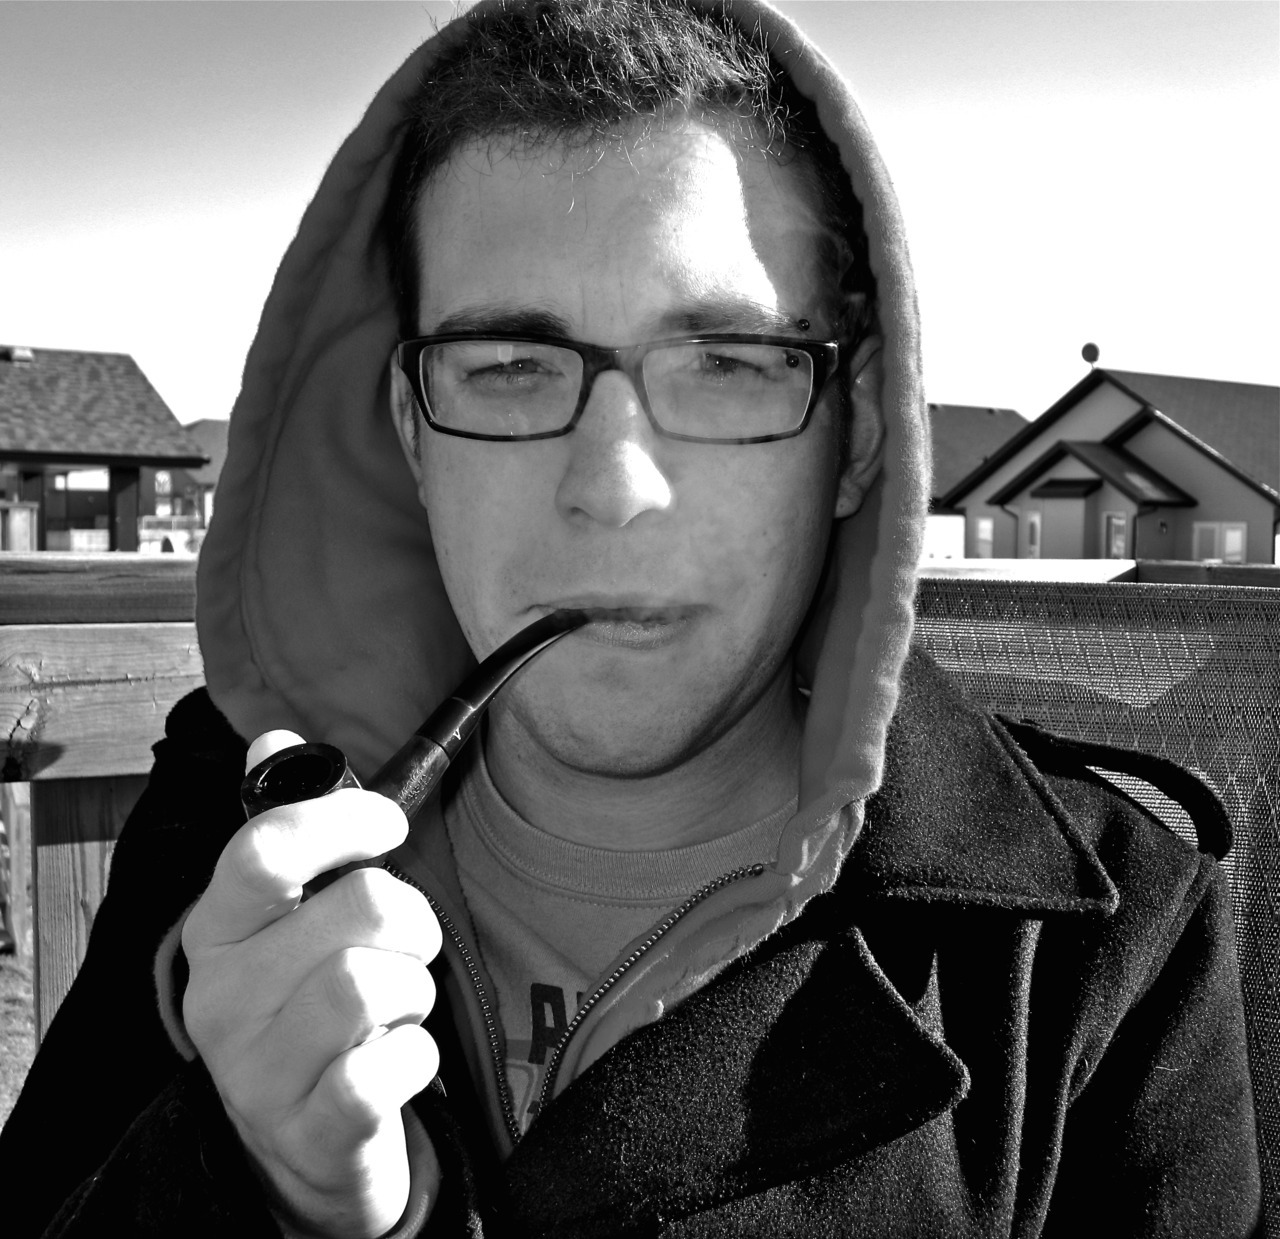 kirstylorrainephotography:  My friend trying out his new tobacco pipe on his birthday.  Happy birthday, friend.